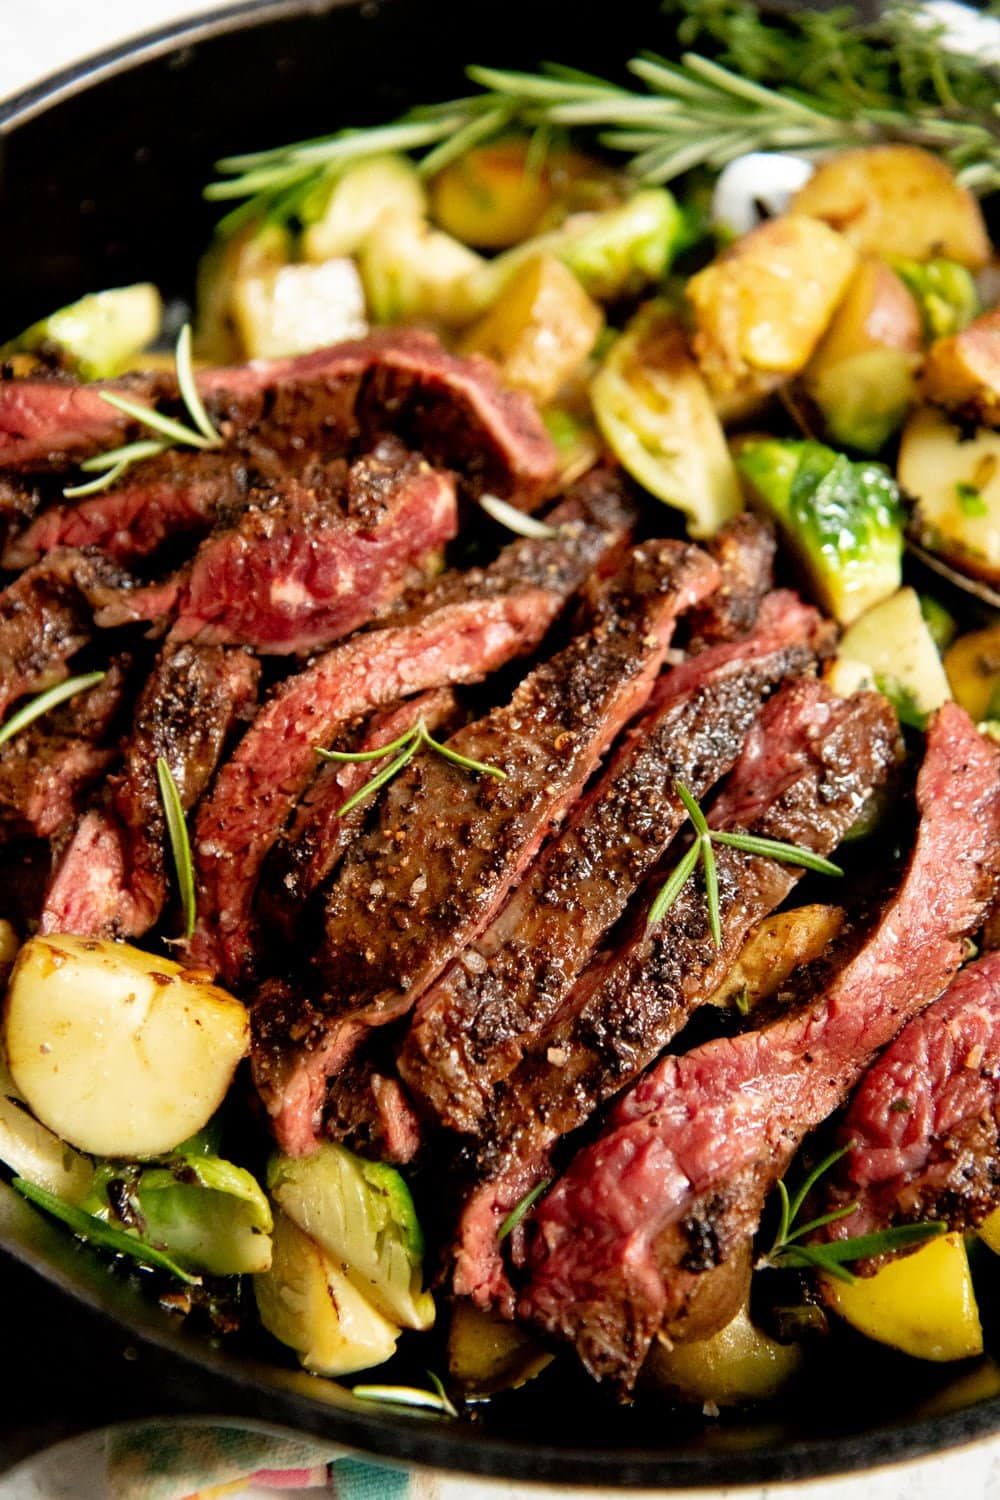 Sliced seared steak on top of Potatoes and Brussels sprouts in a cast iron skillet